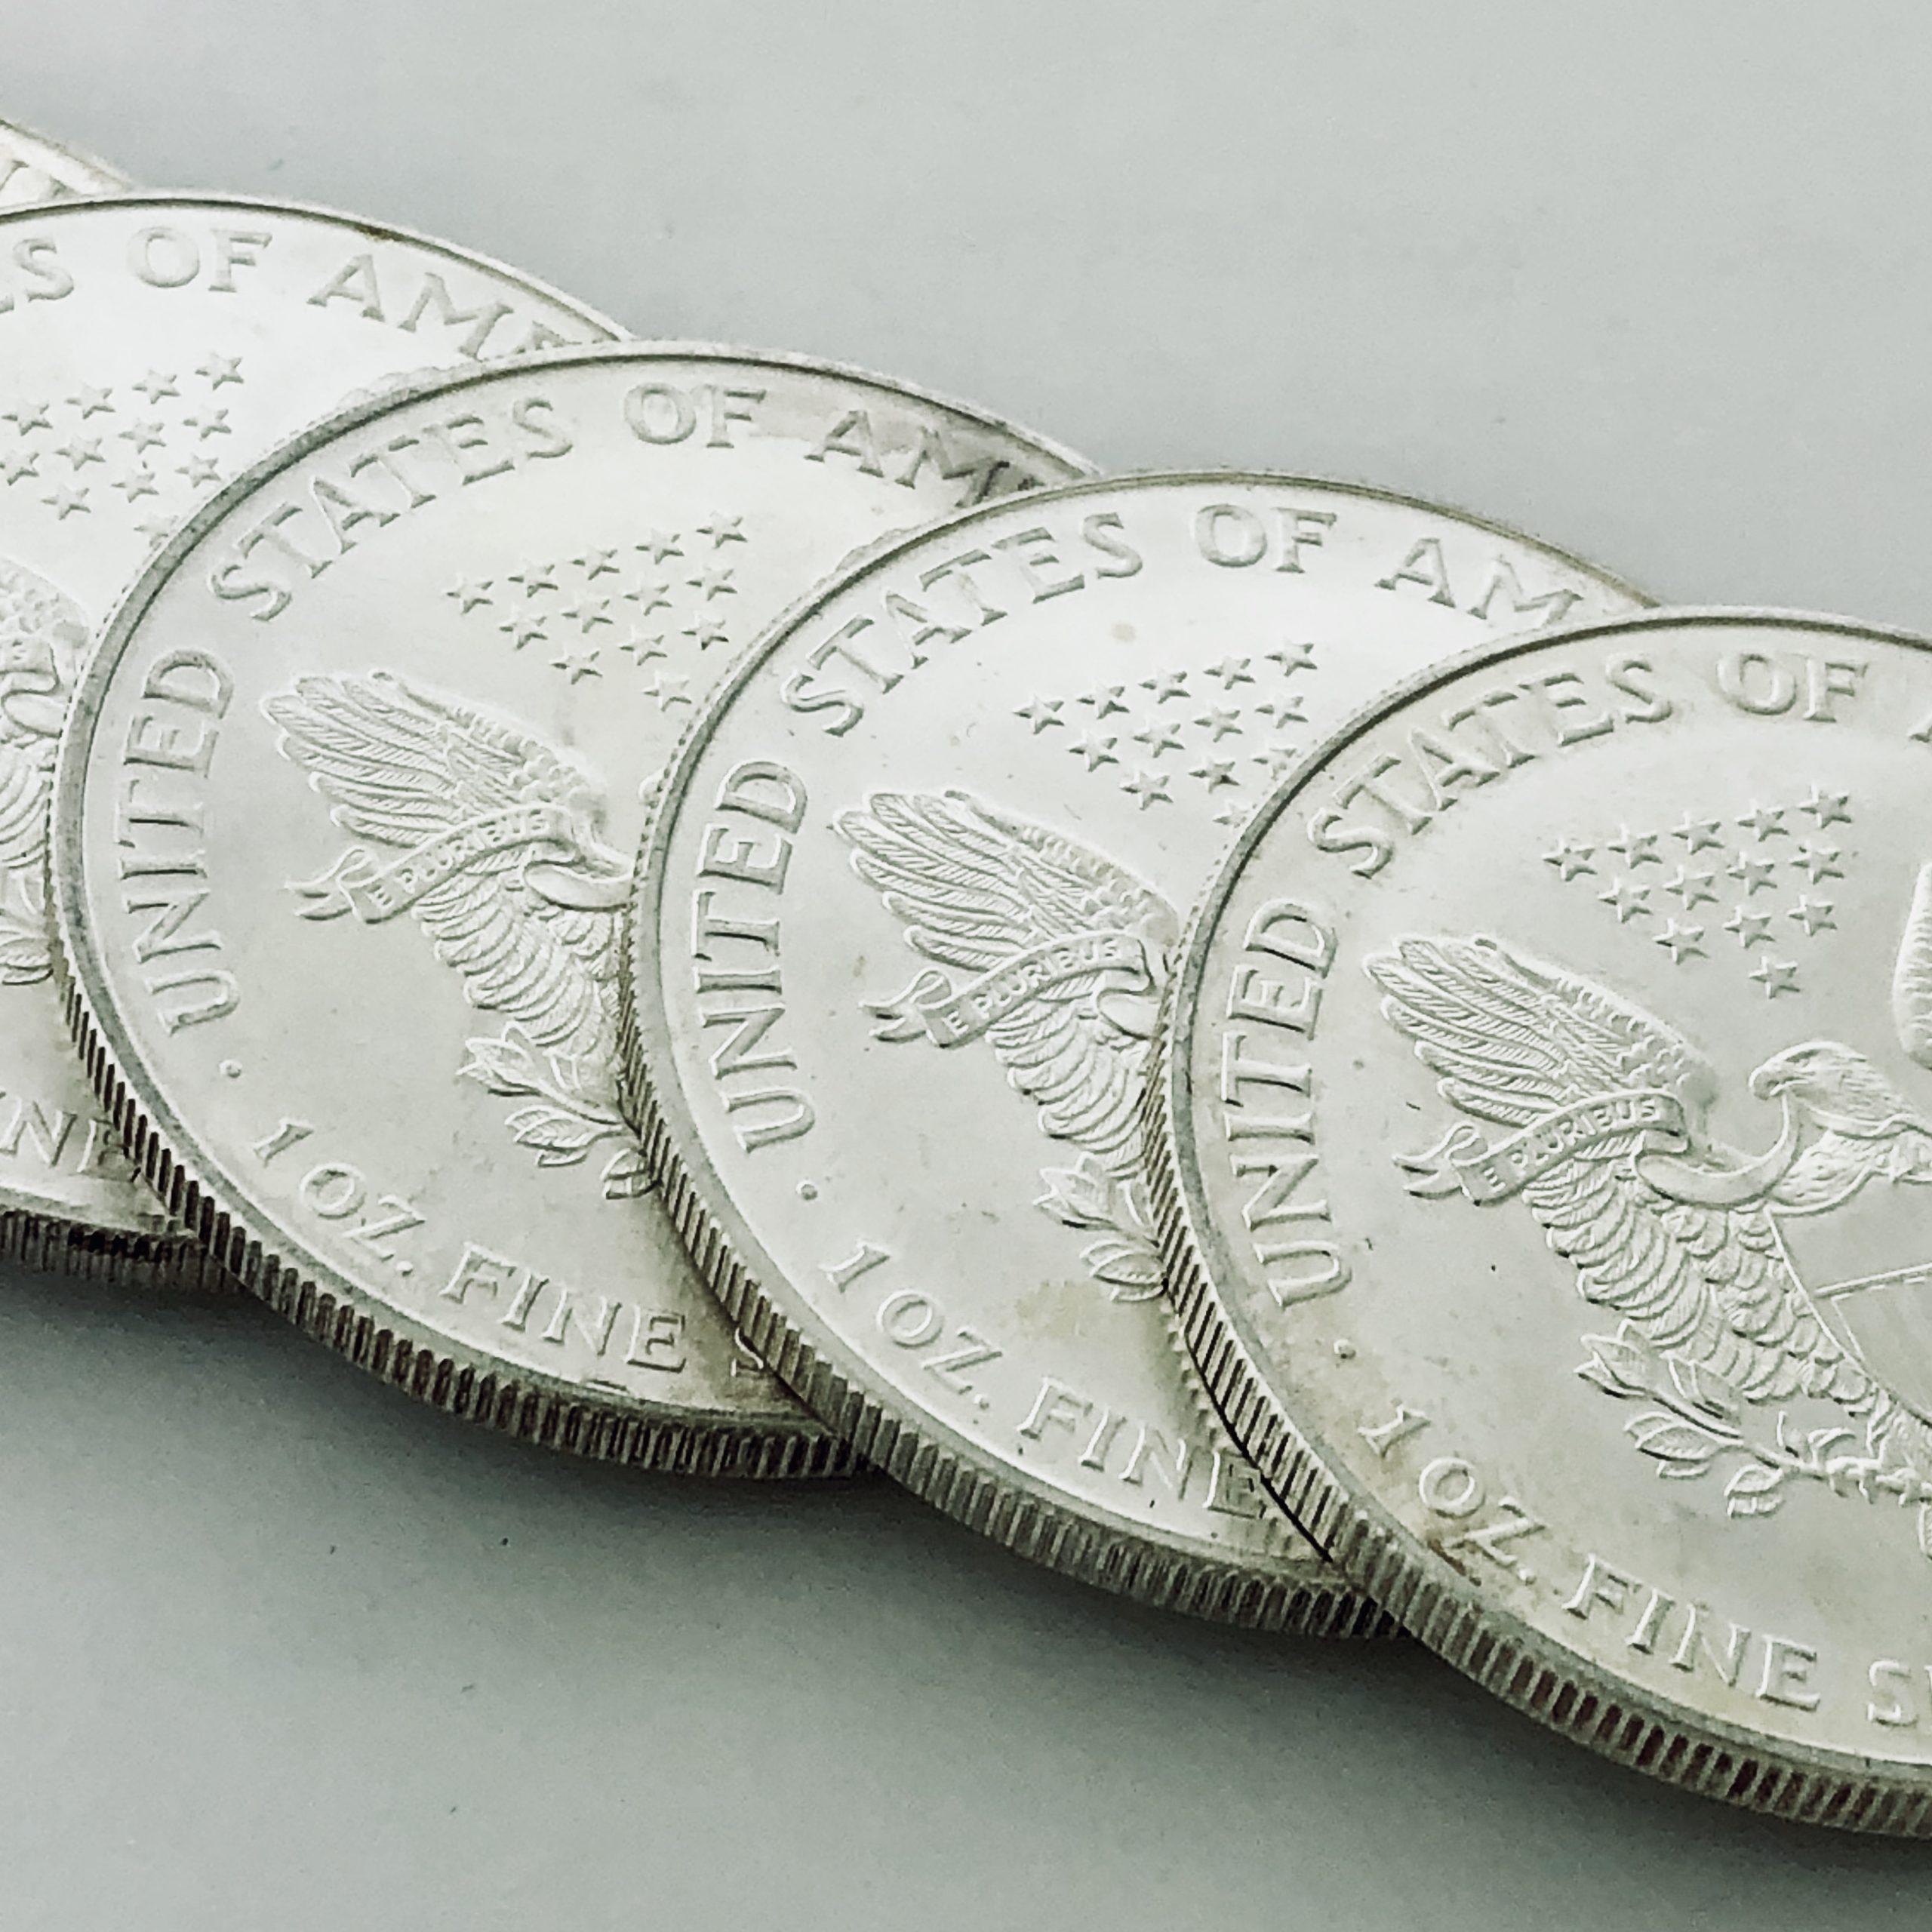 Buy or sell silver coins in Baton Rouge